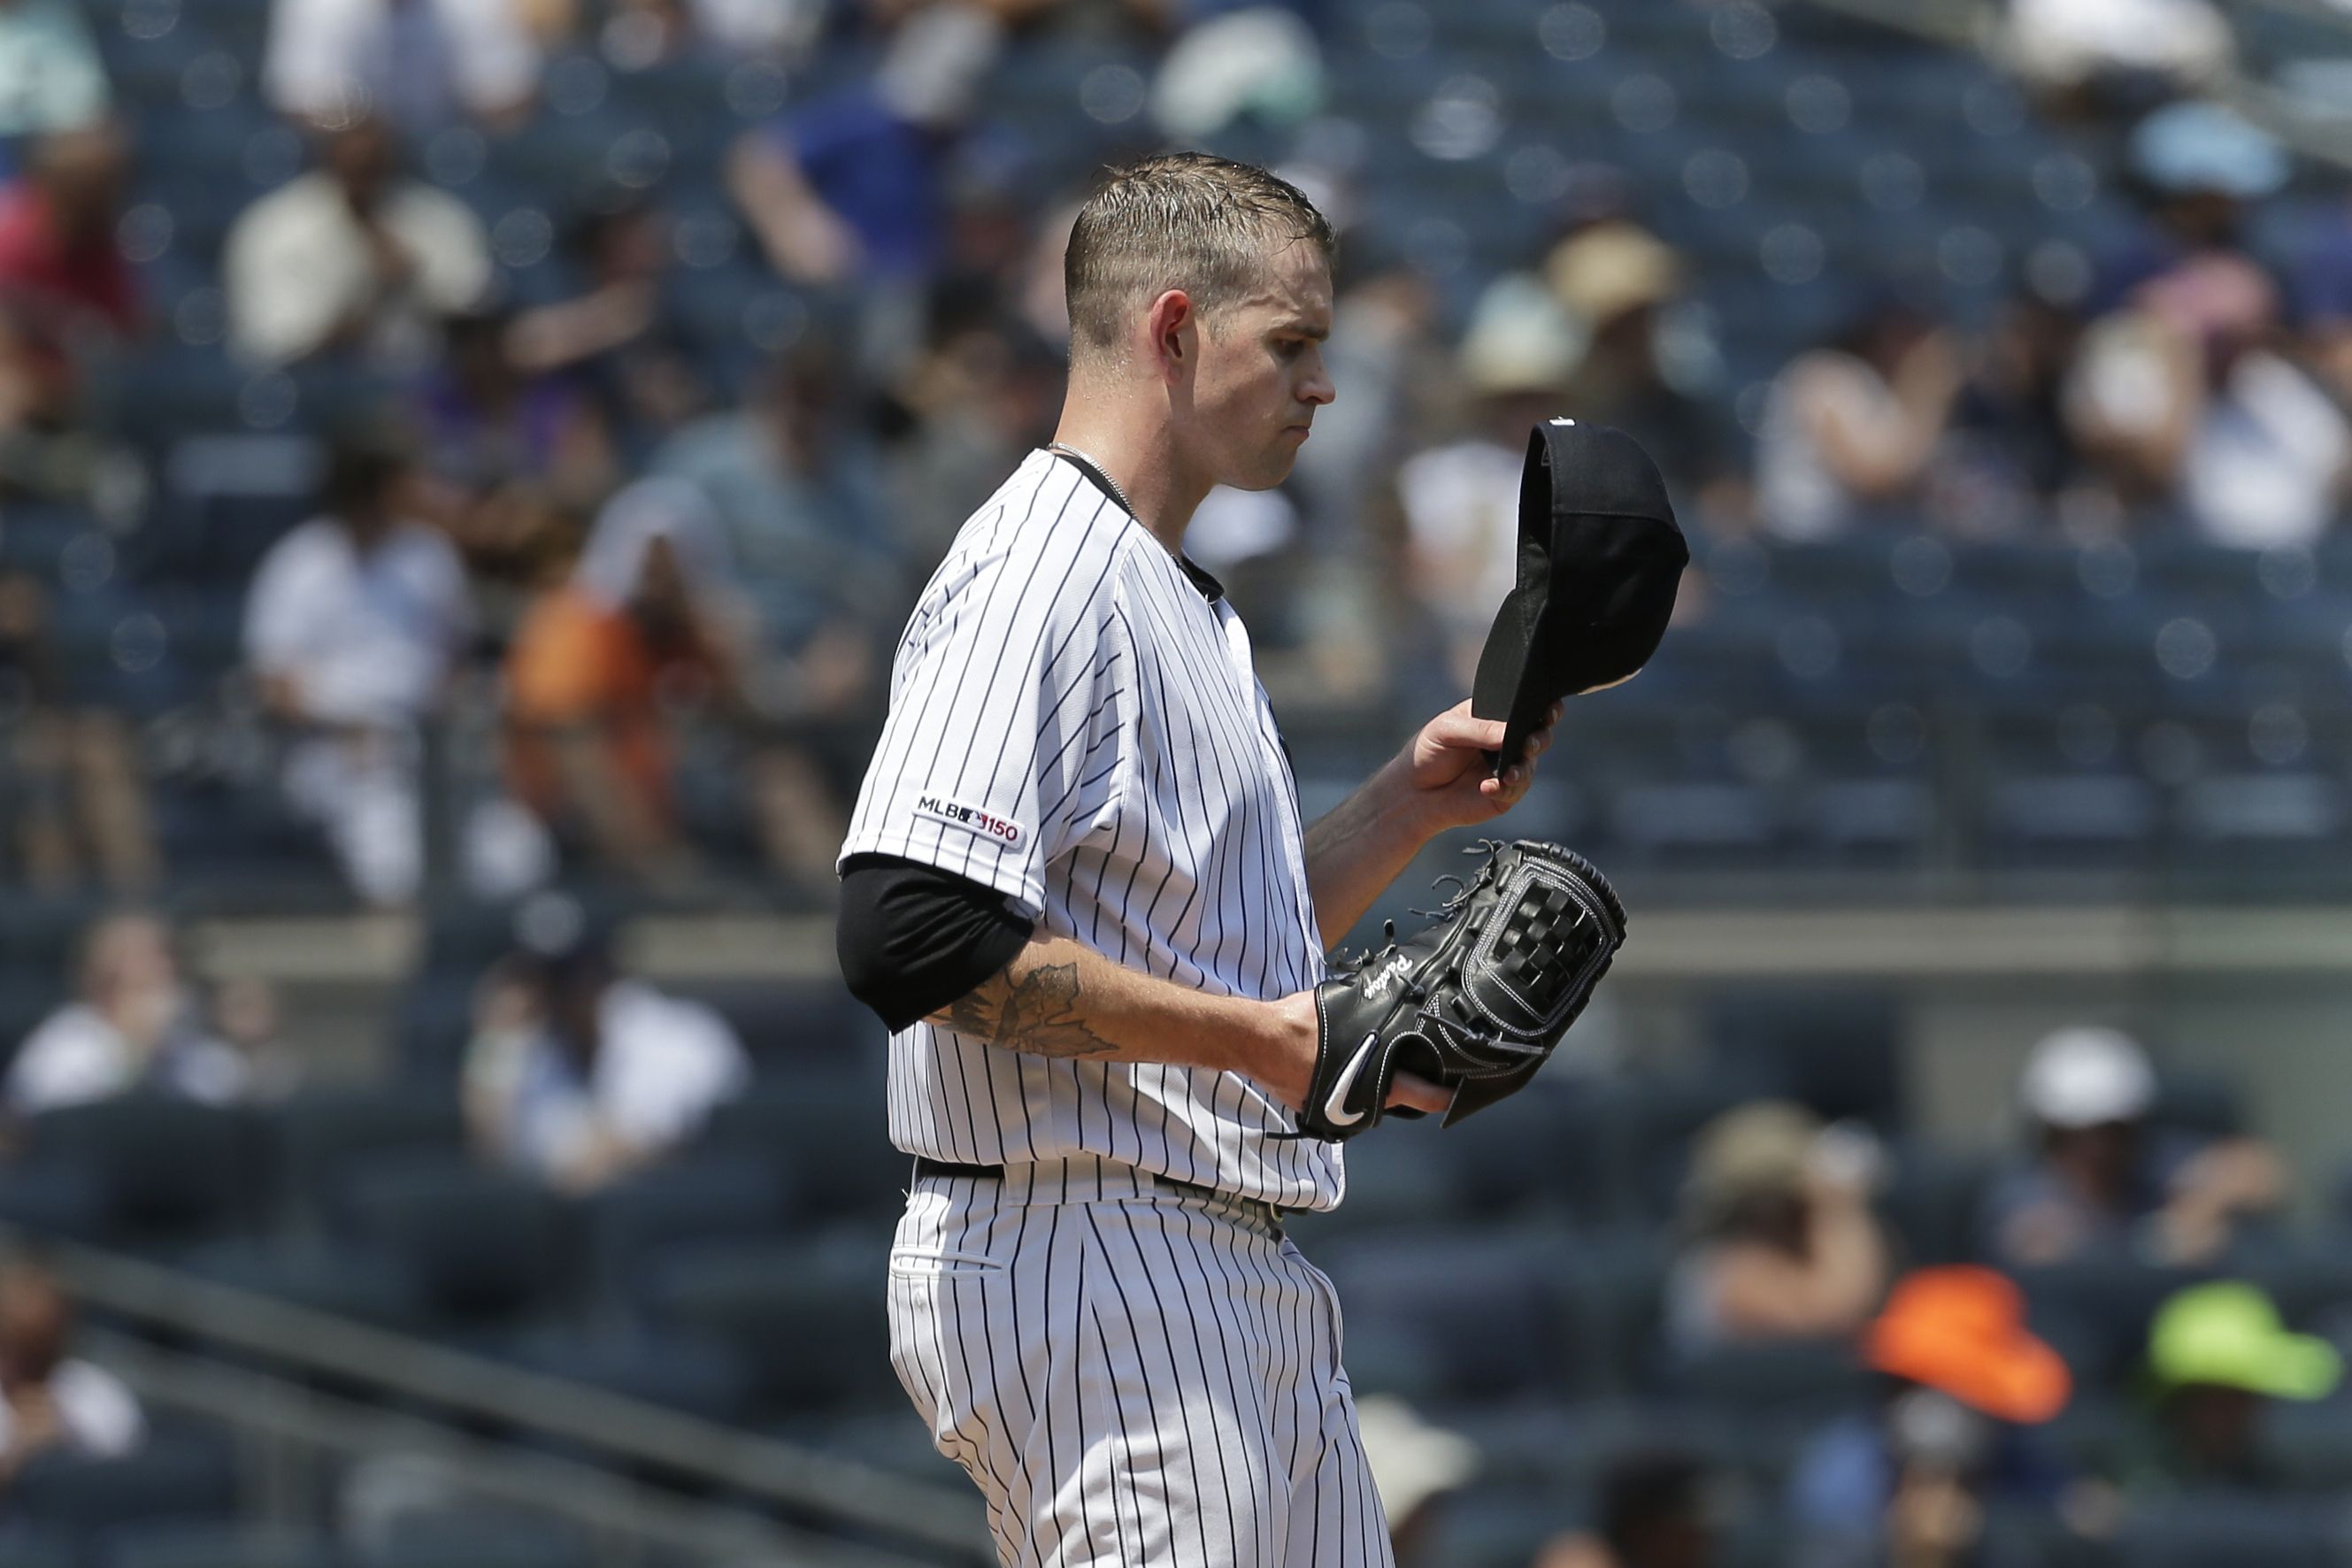 Yankees, James Paxton stumble in loss to Rockies